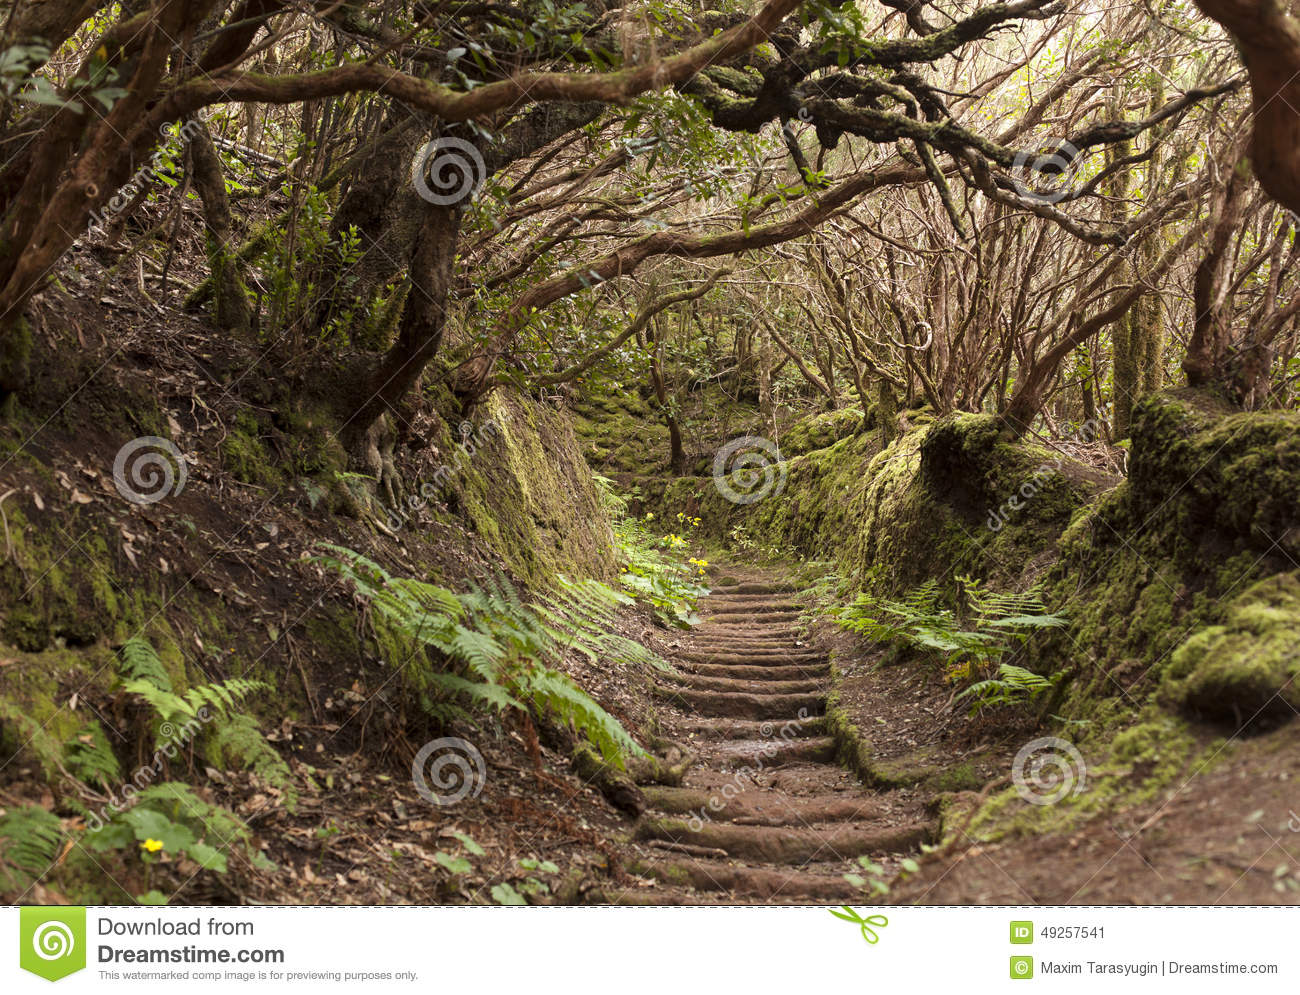 Anaga rain Forest in Tenerife